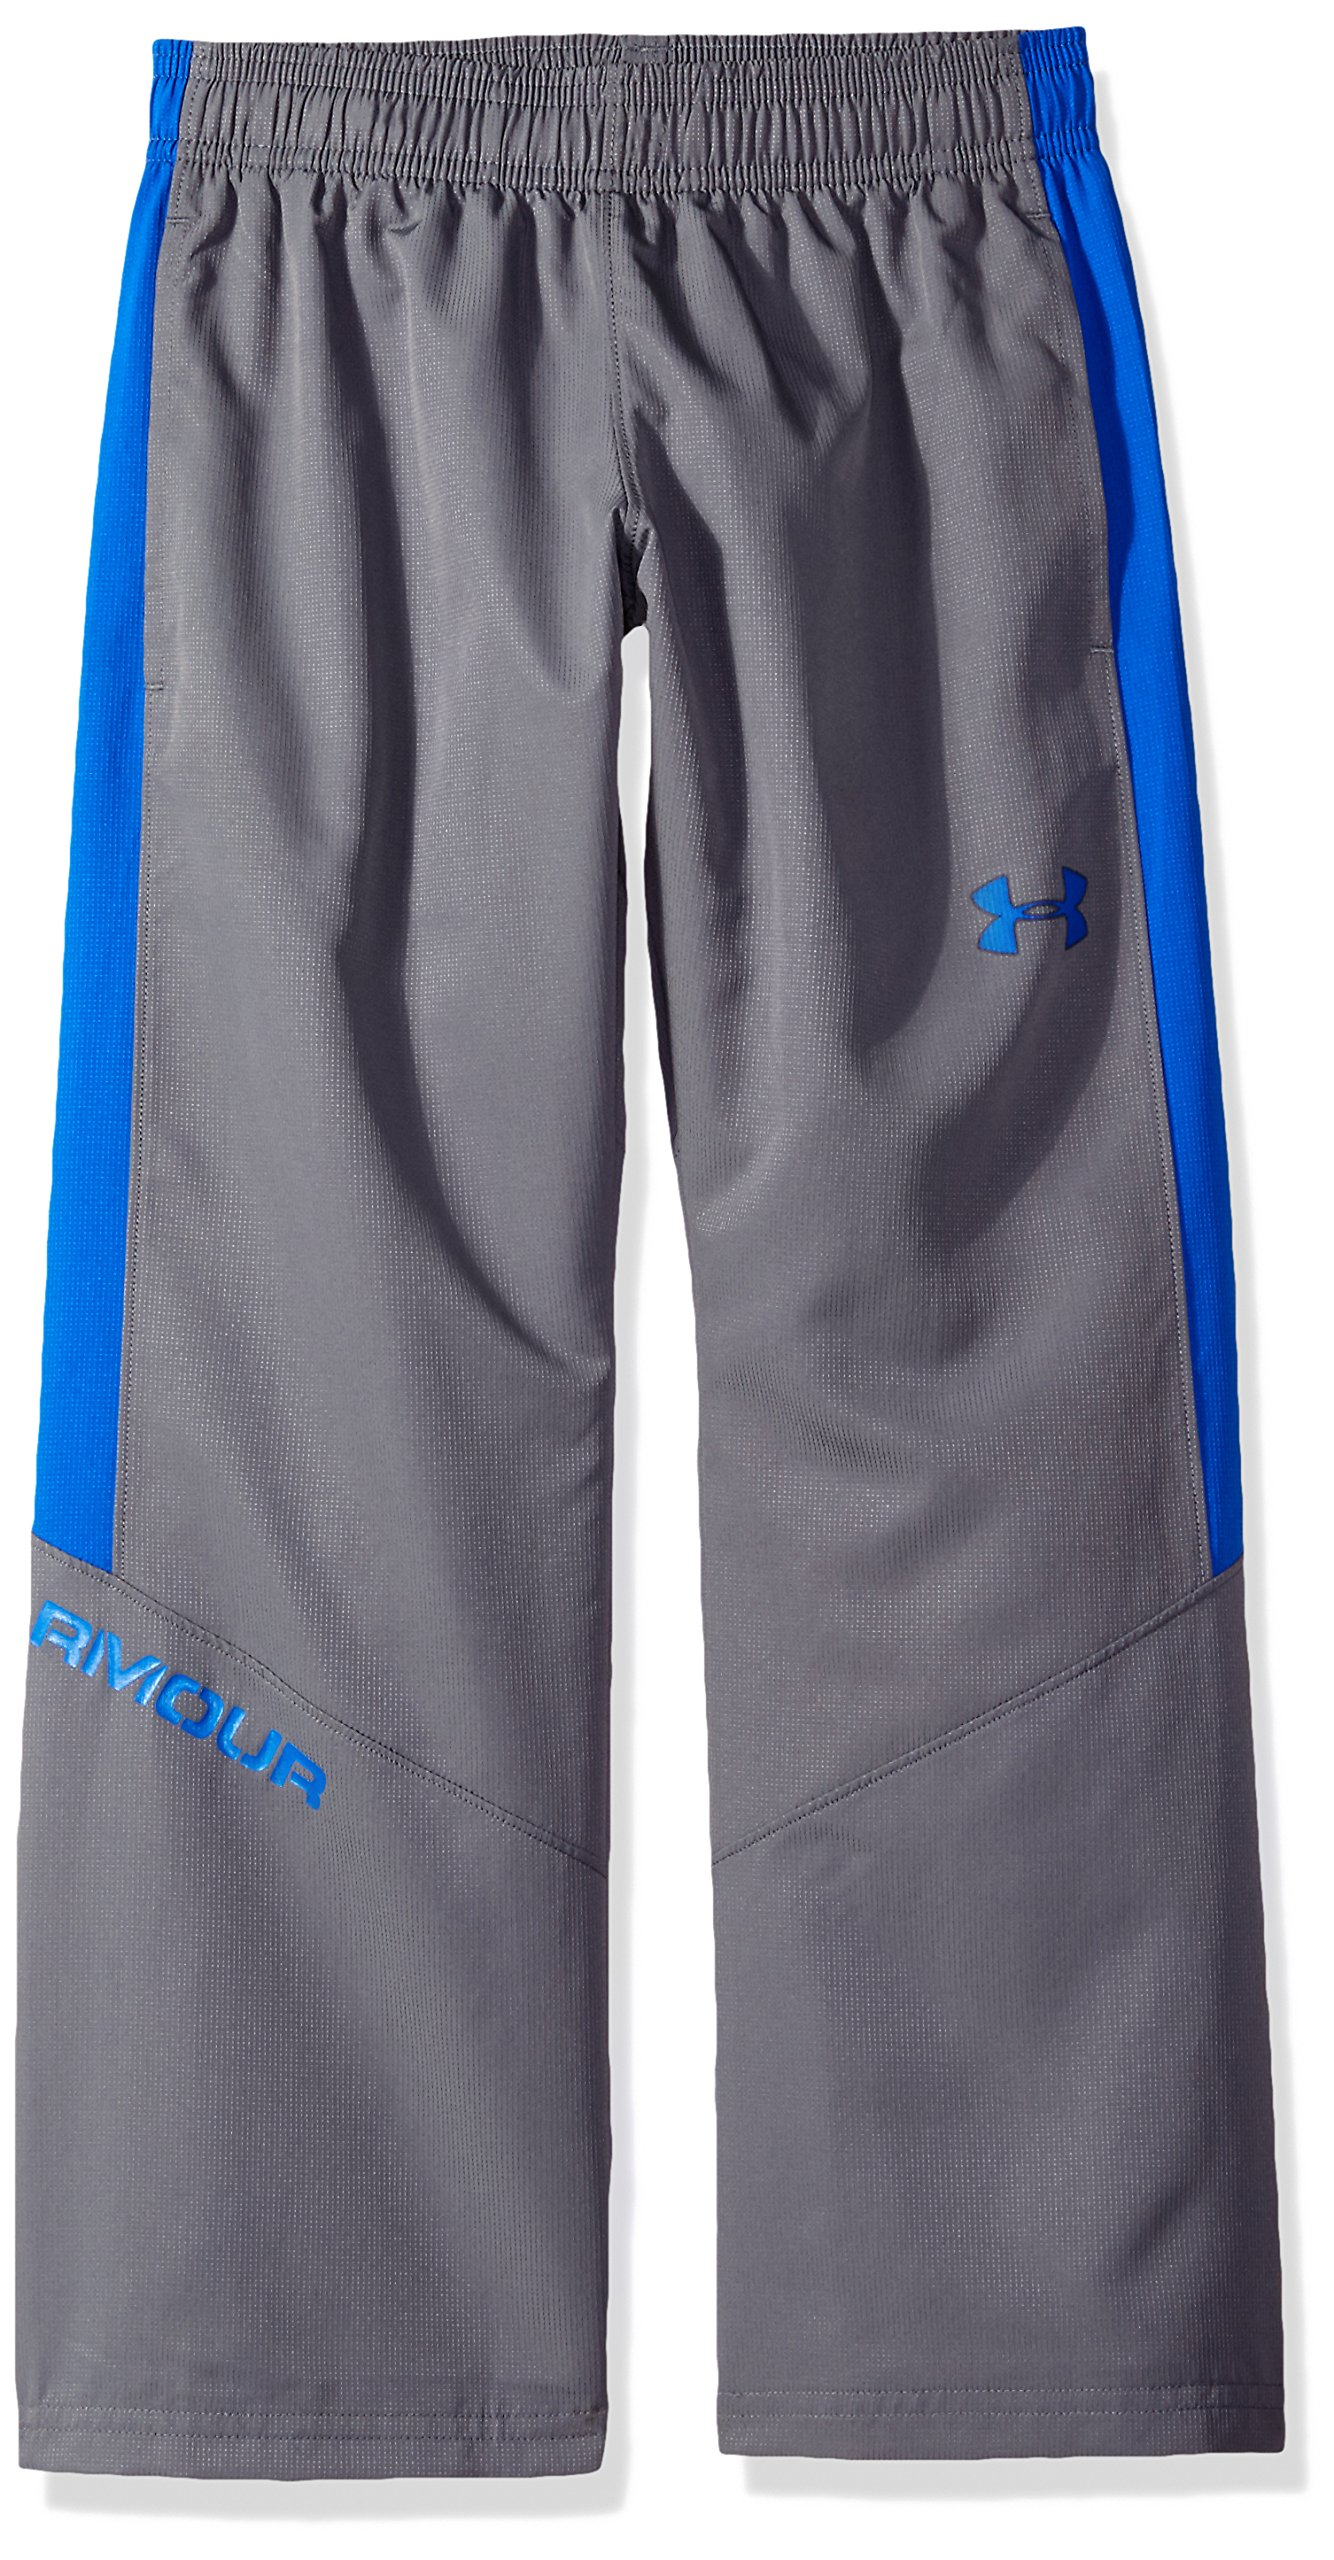 Under Armour Boys' Main Enforcer Woven Pants, Graphite/Ultra Blue, Youth Large